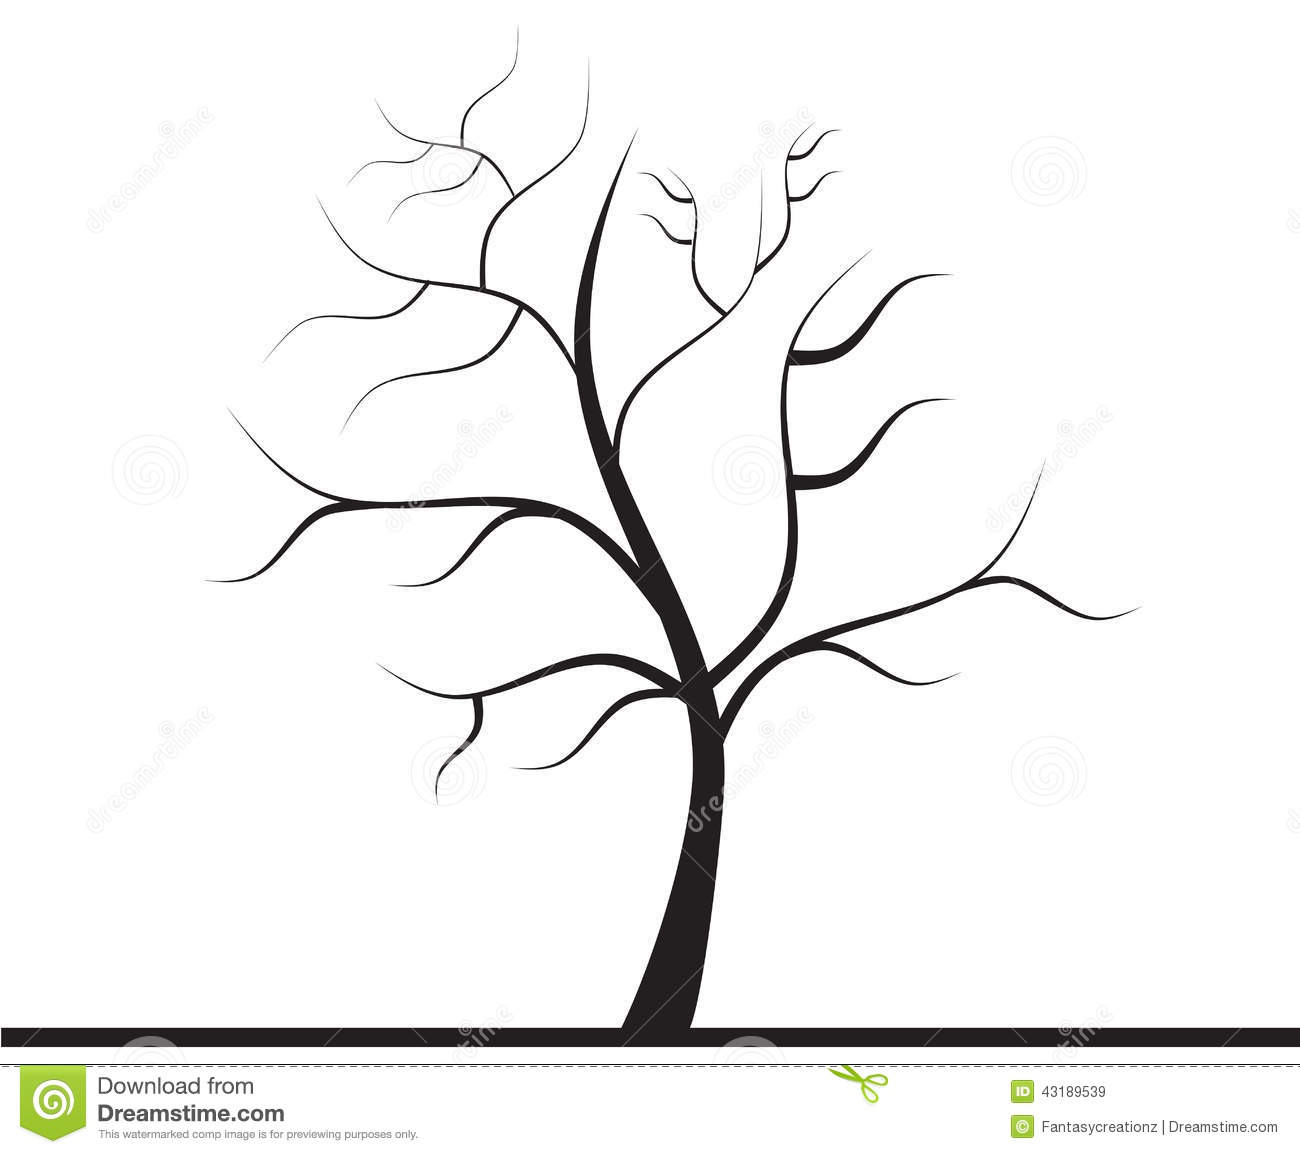 Tree Without Leaves Stock Photo - Image: 43189539